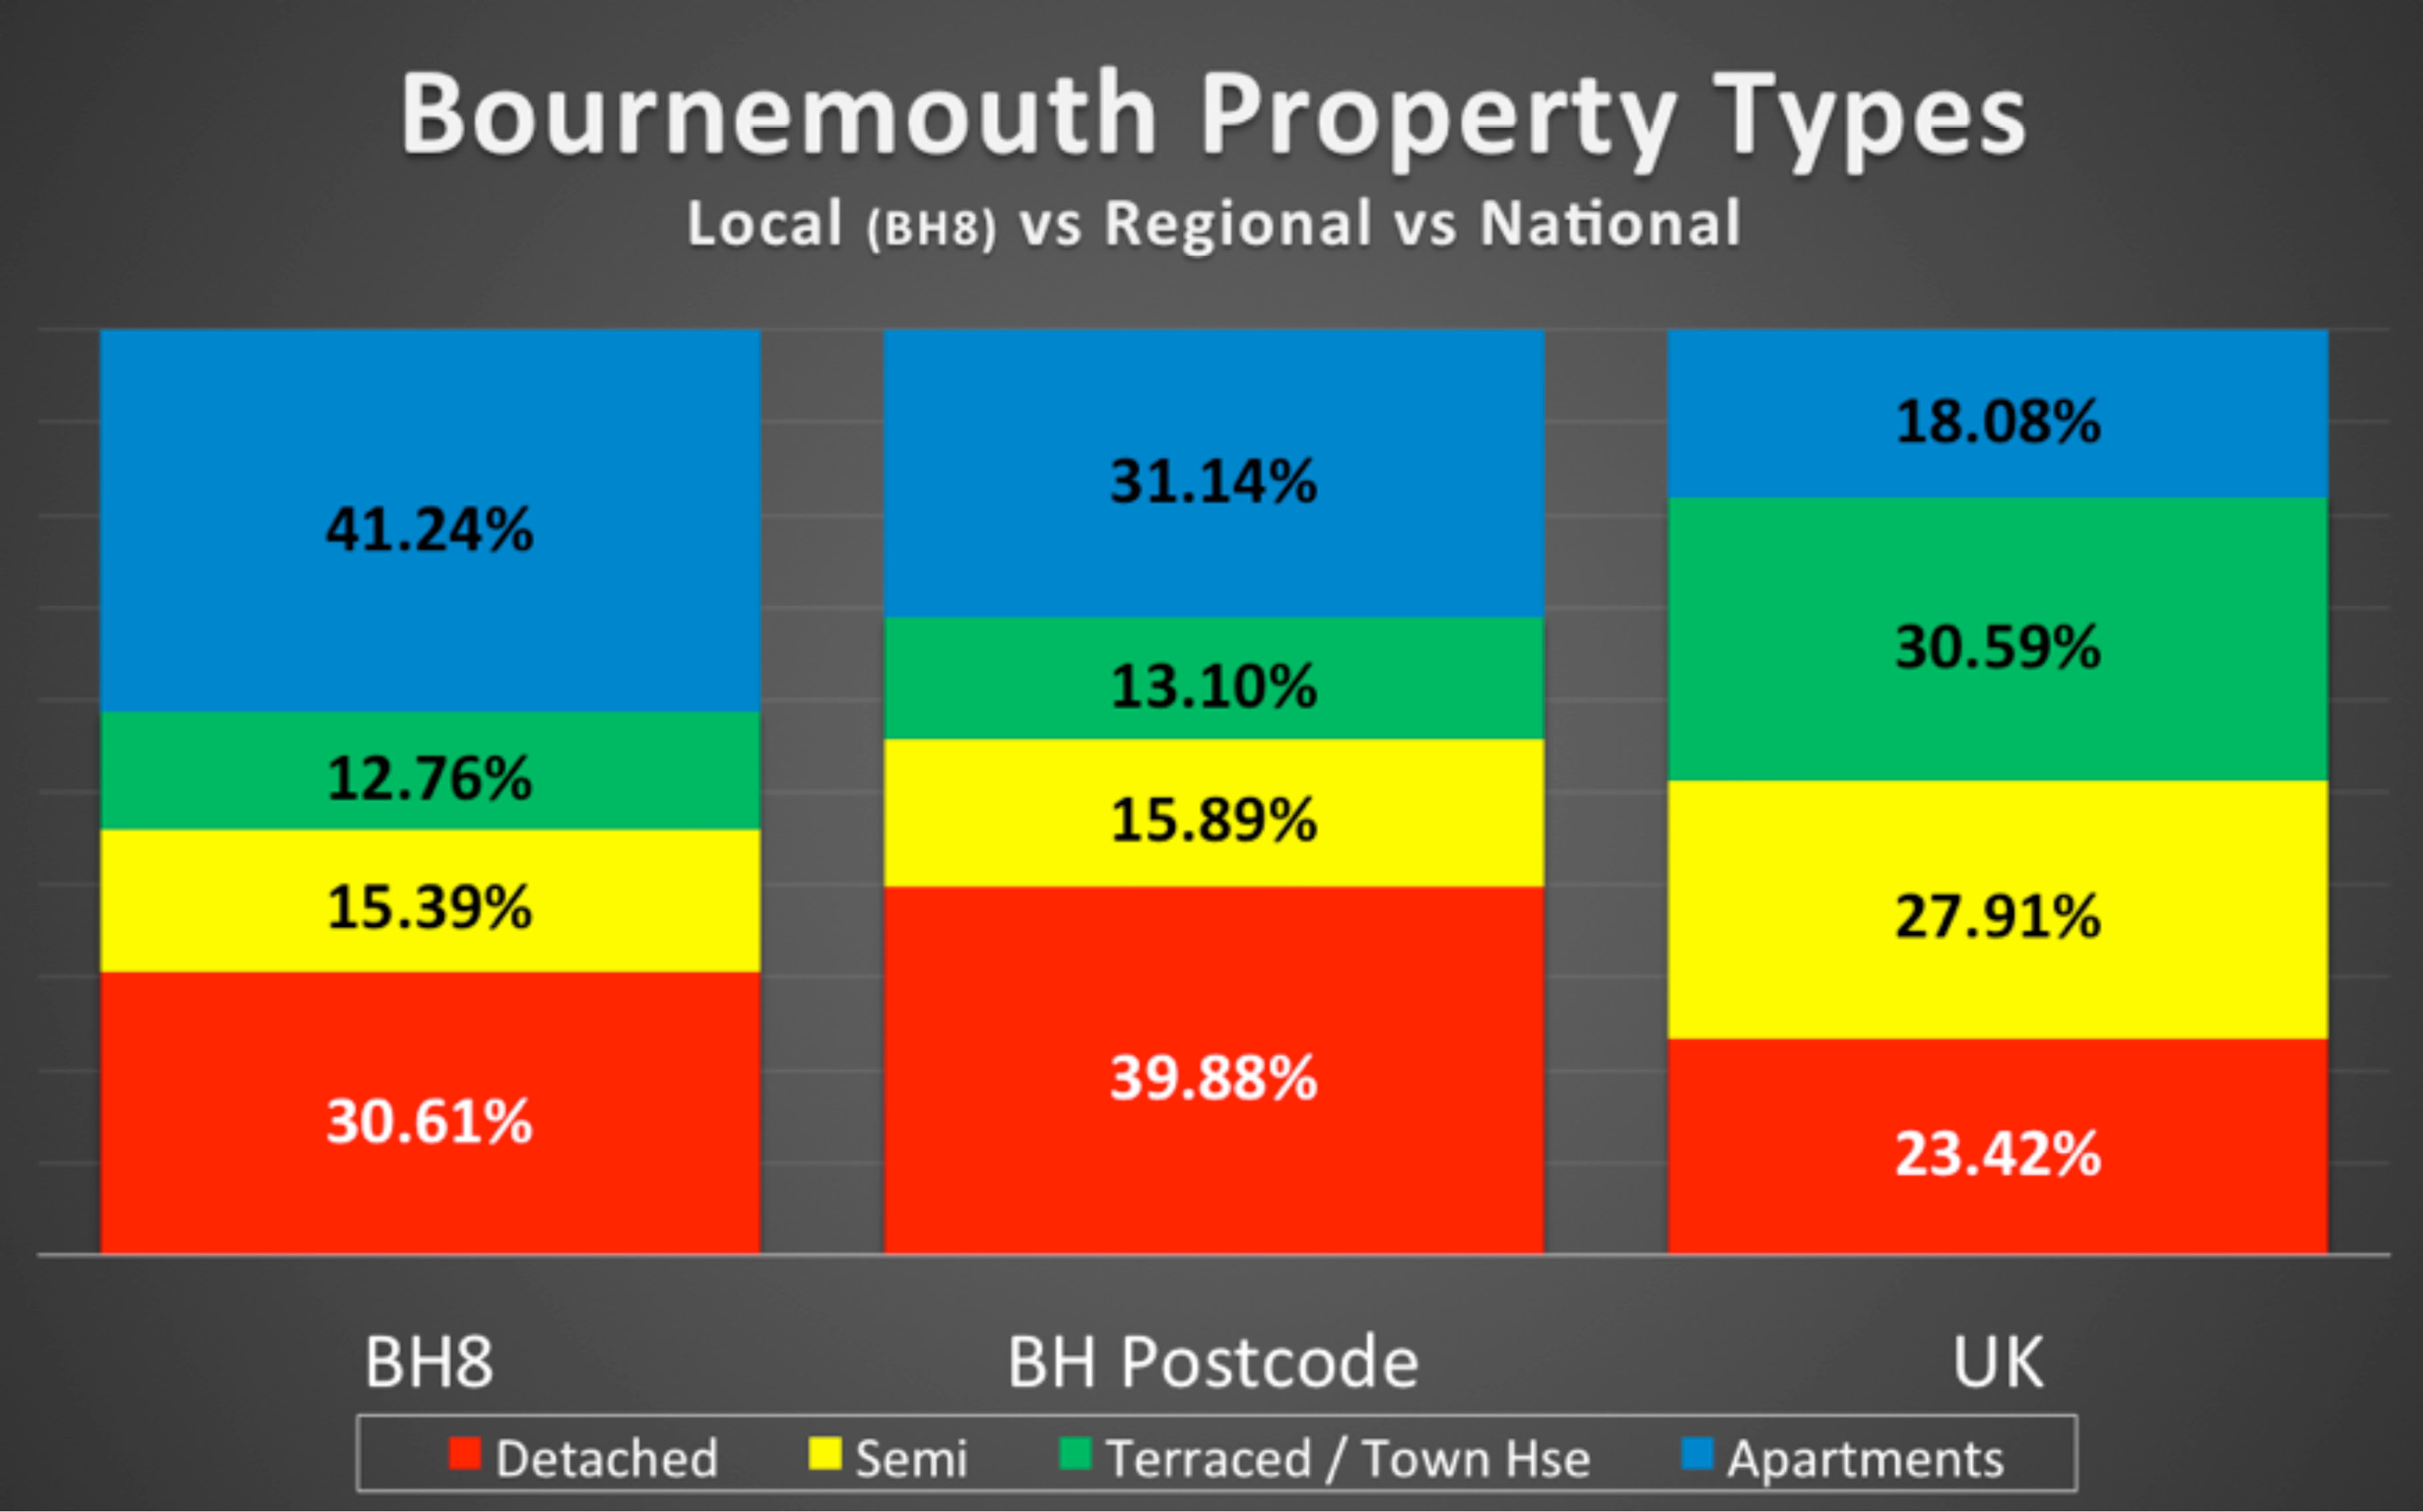 A graph showing Bournemouth property types compared to national property types